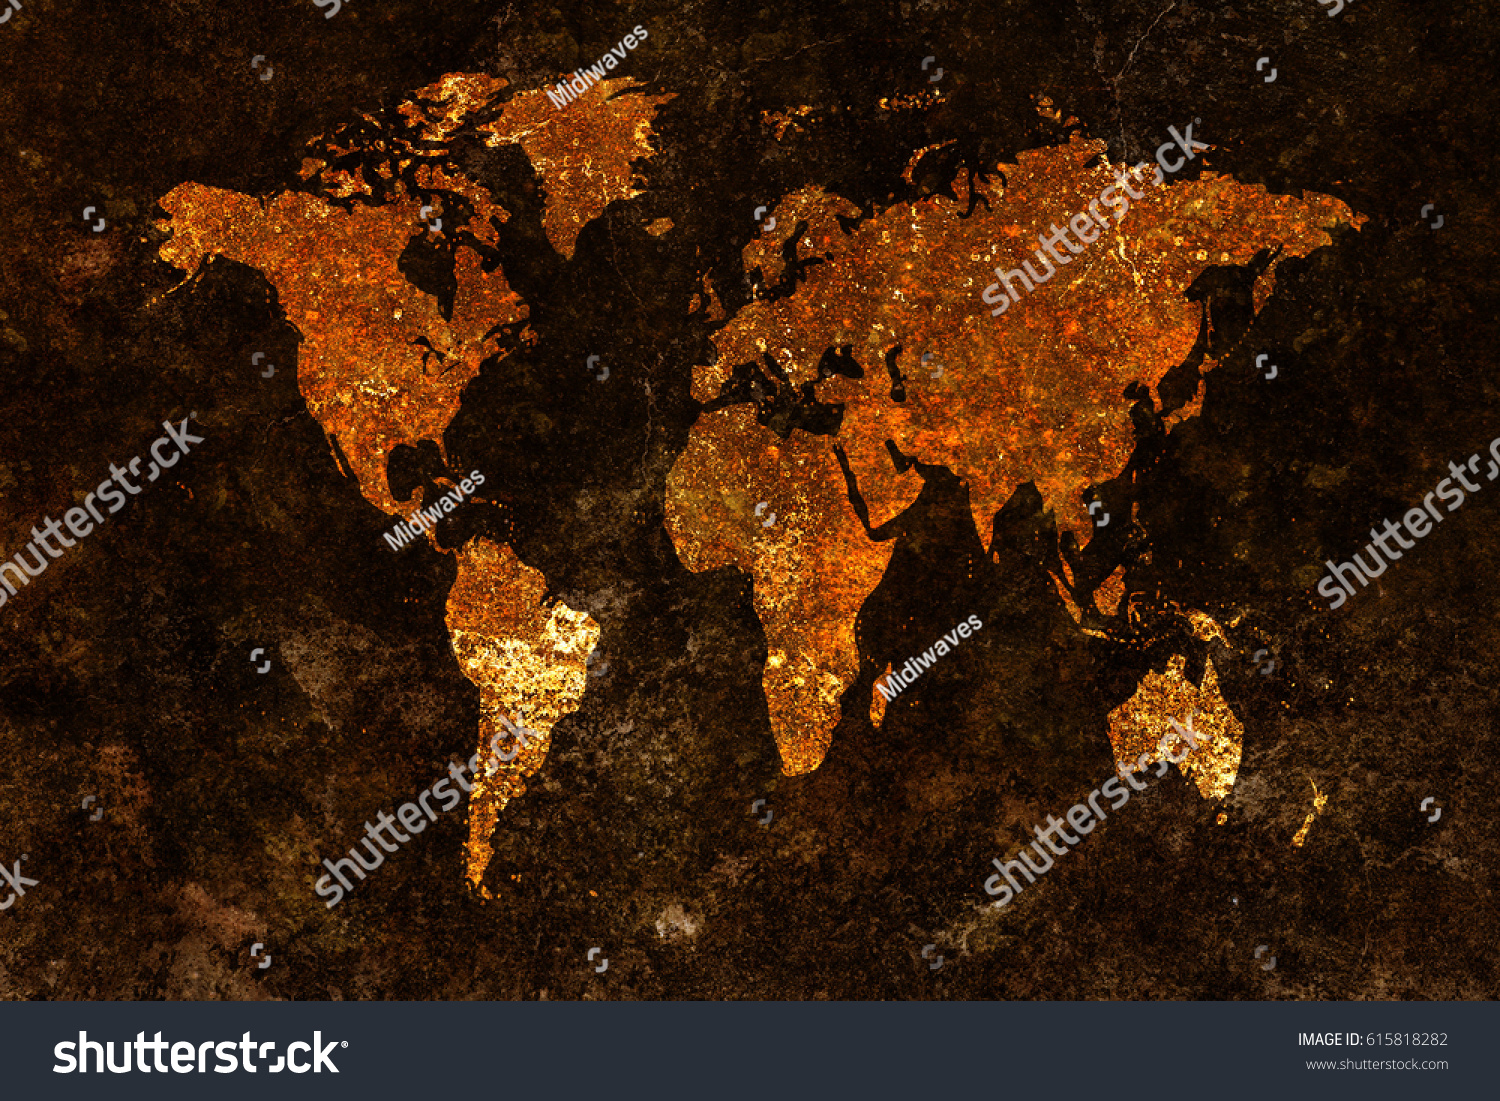 Grunge world map background stock photo 615818282 shutterstock gumiabroncs Gallery